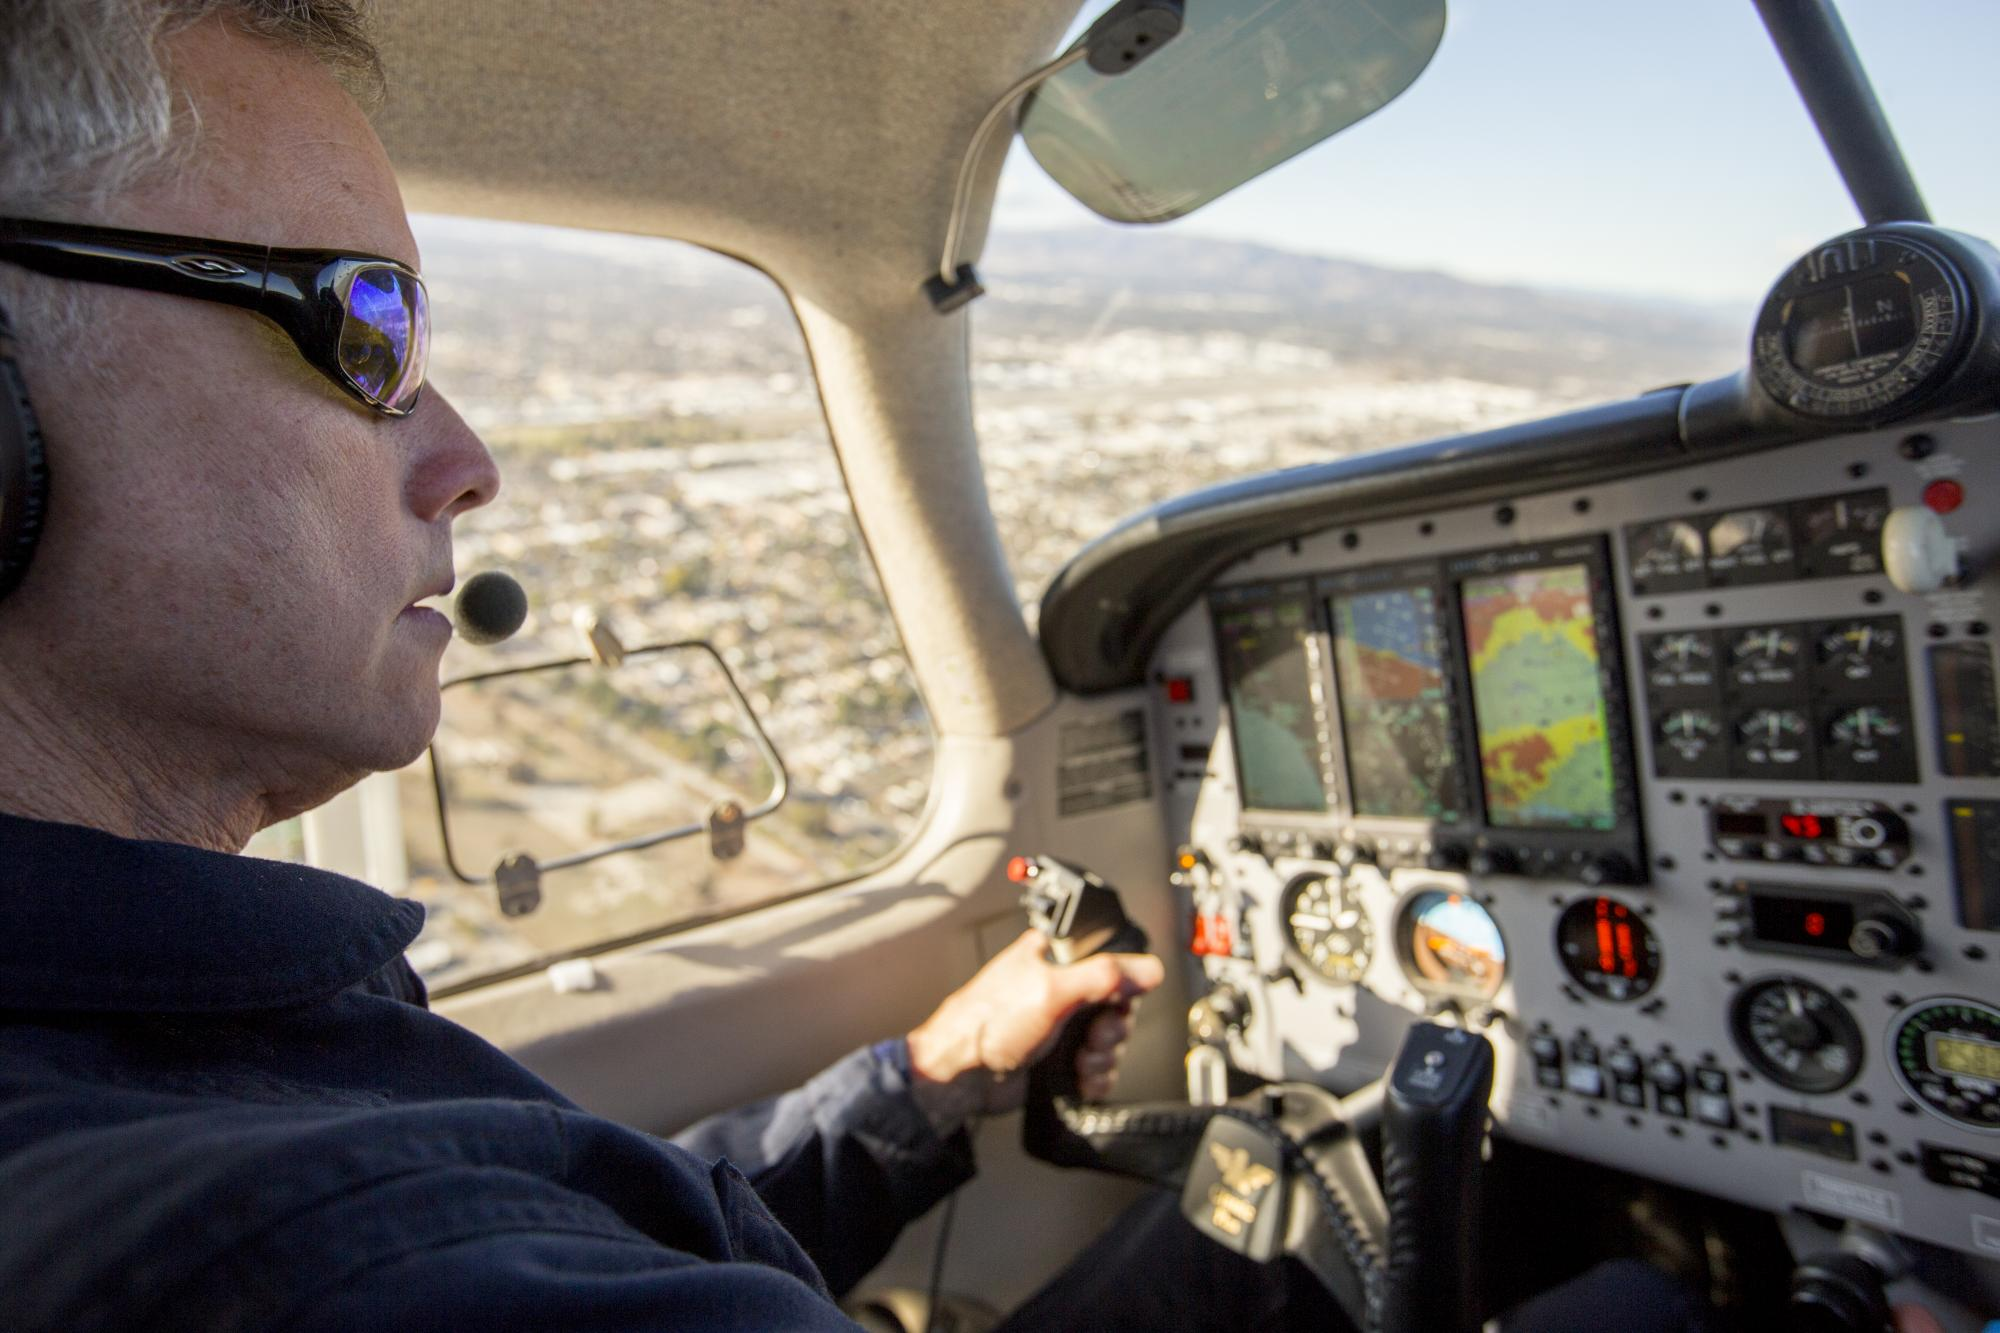 Pilot scientist flies airplane over Aliso Canyon.